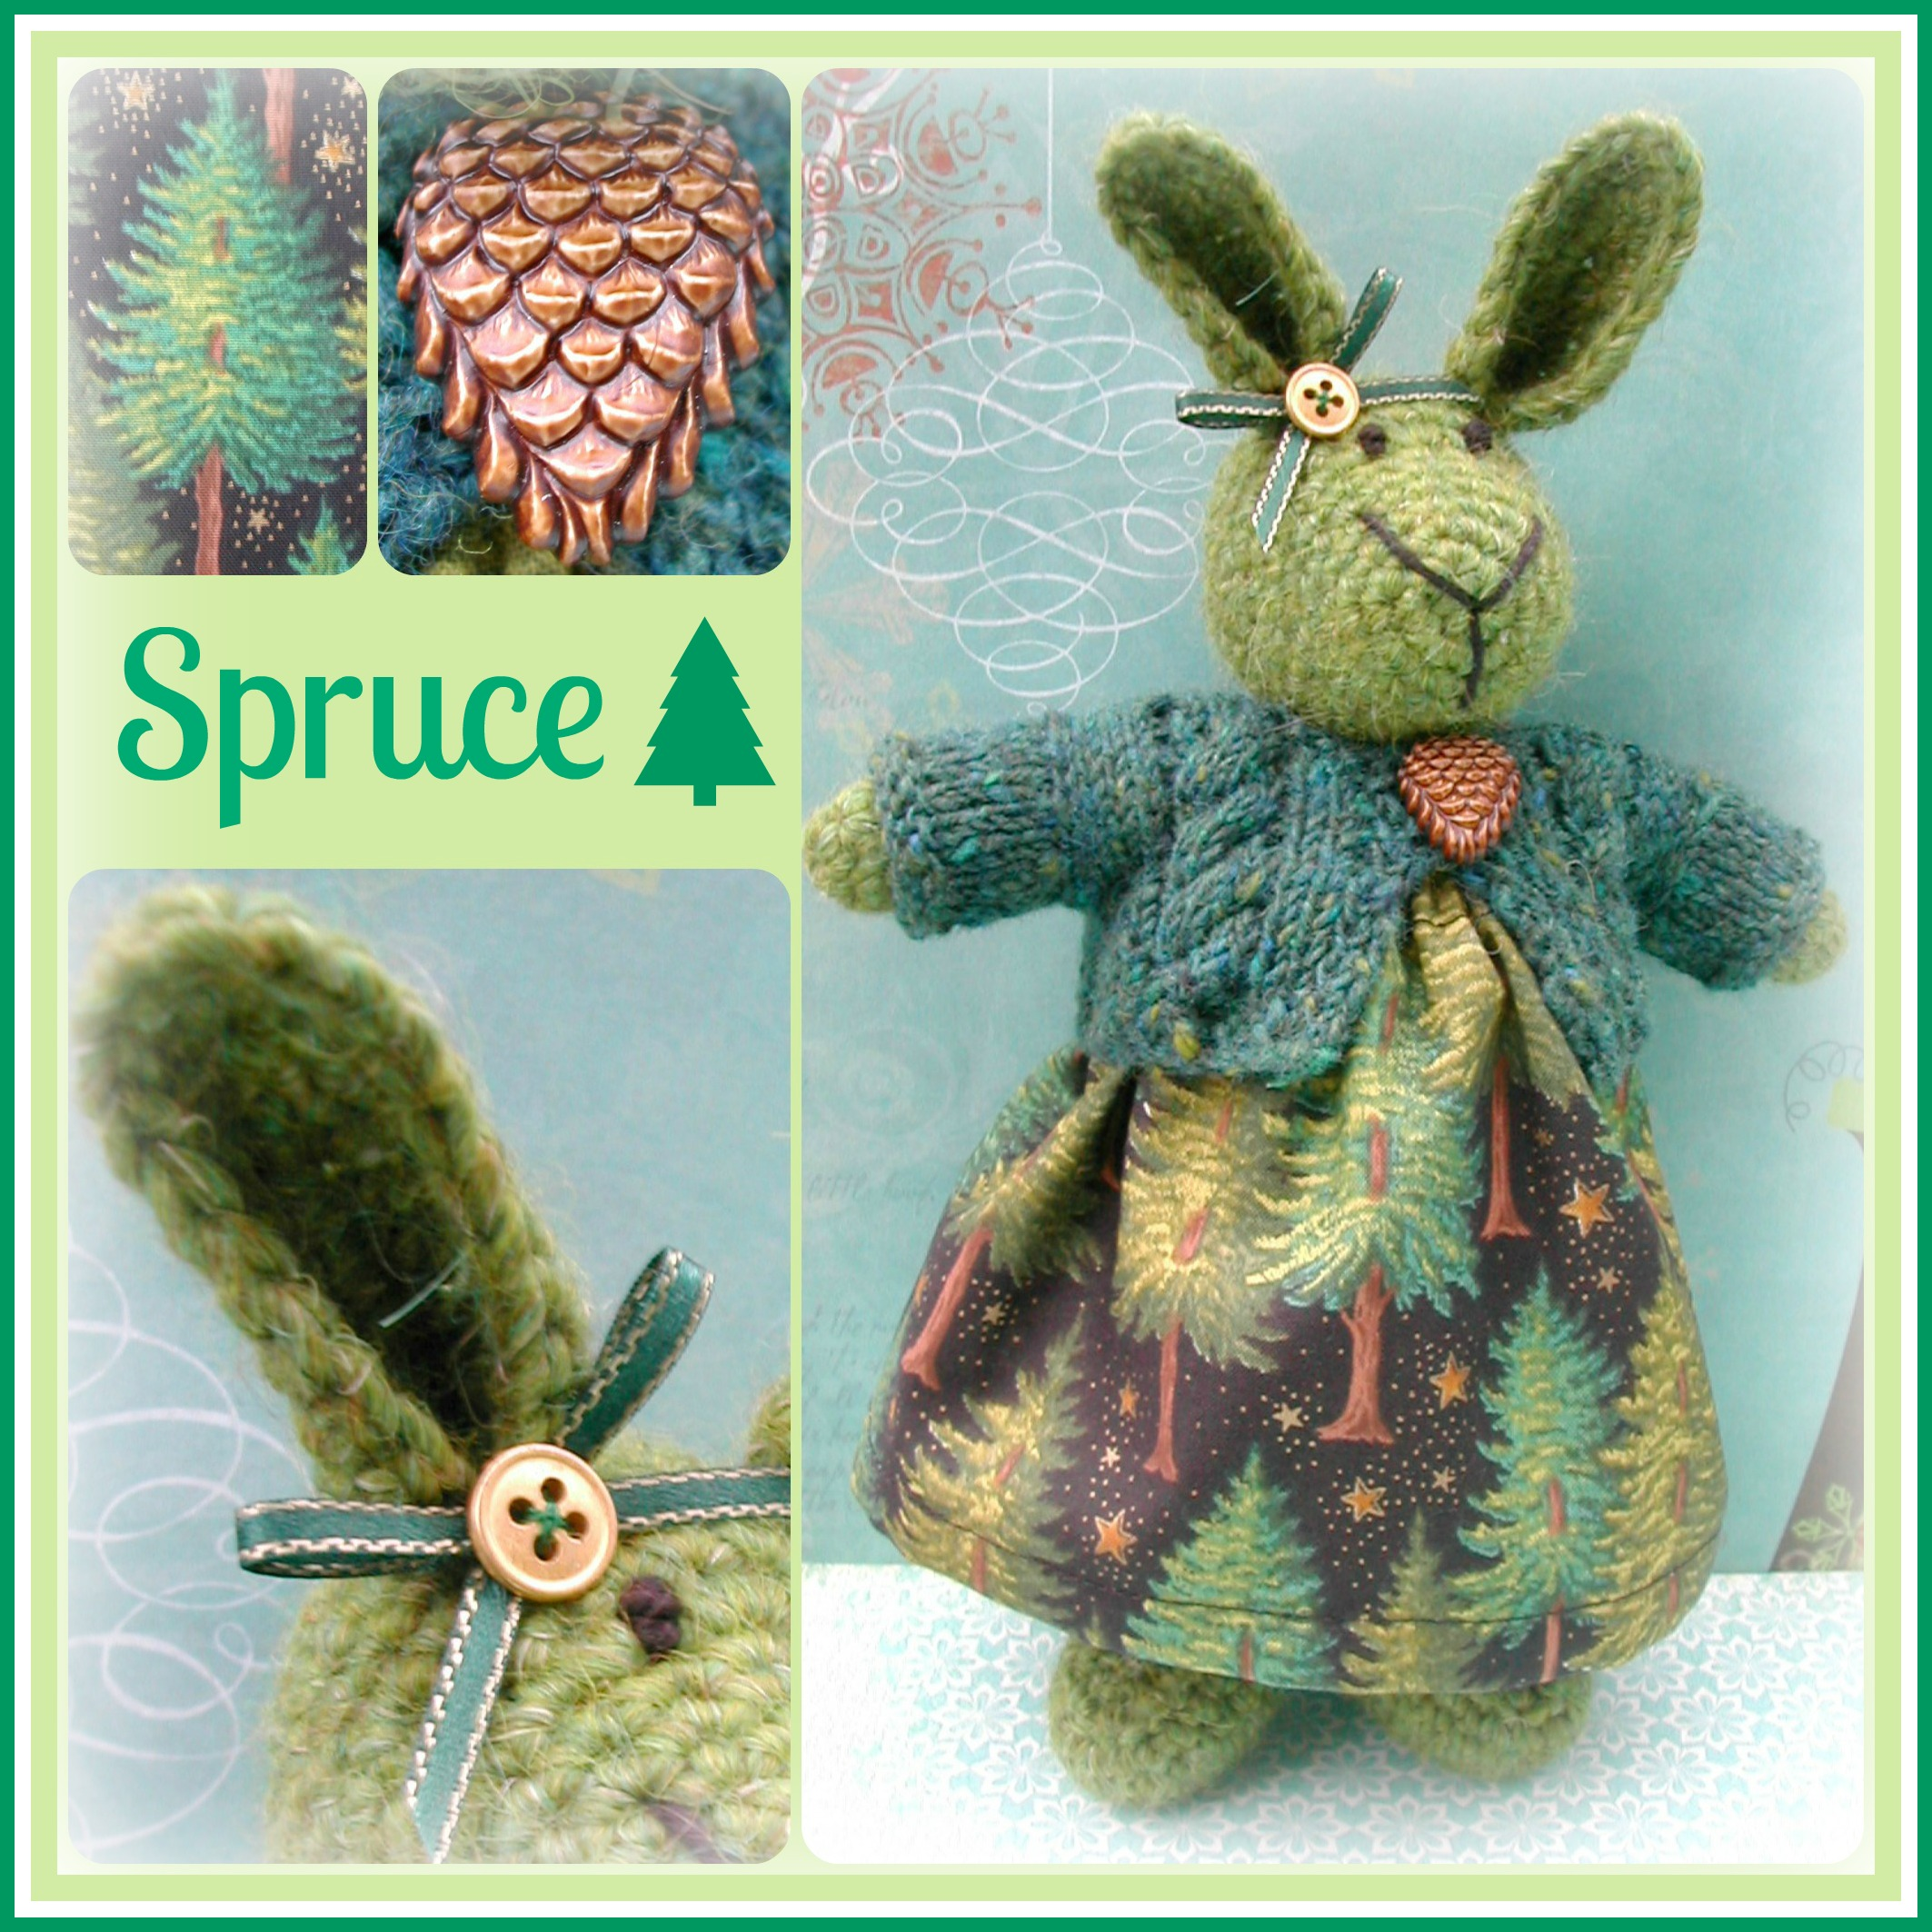 Spruce Collage